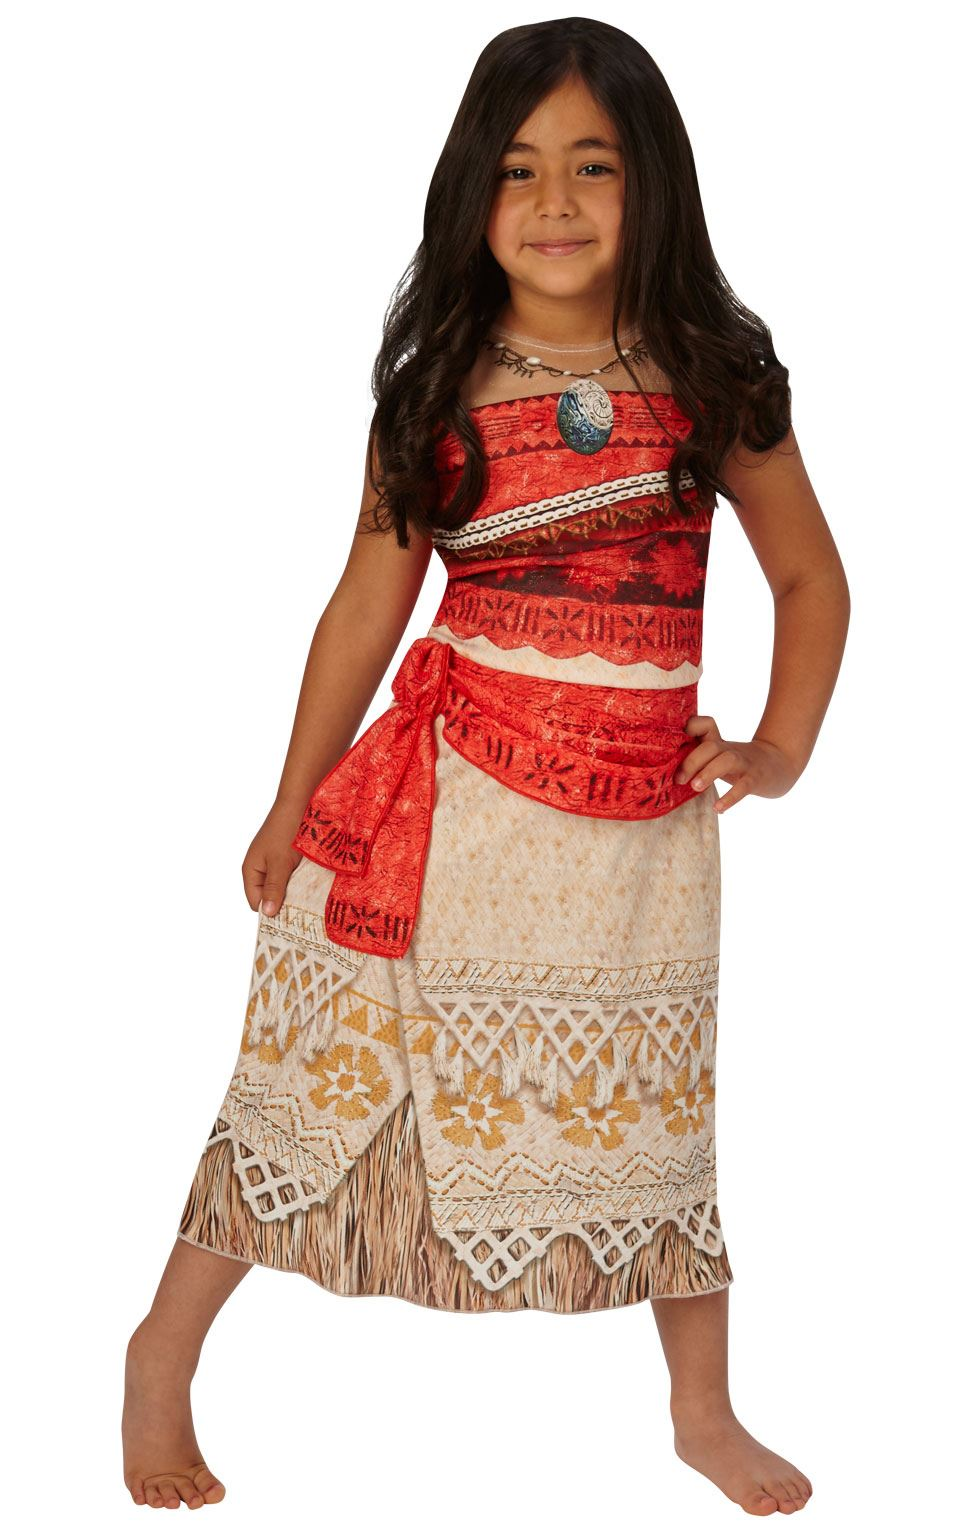 Girls-Classic-Moana-Costume-Hawaiian-Disney-Princess-Fancy-Dress-Book-Day-Outfit